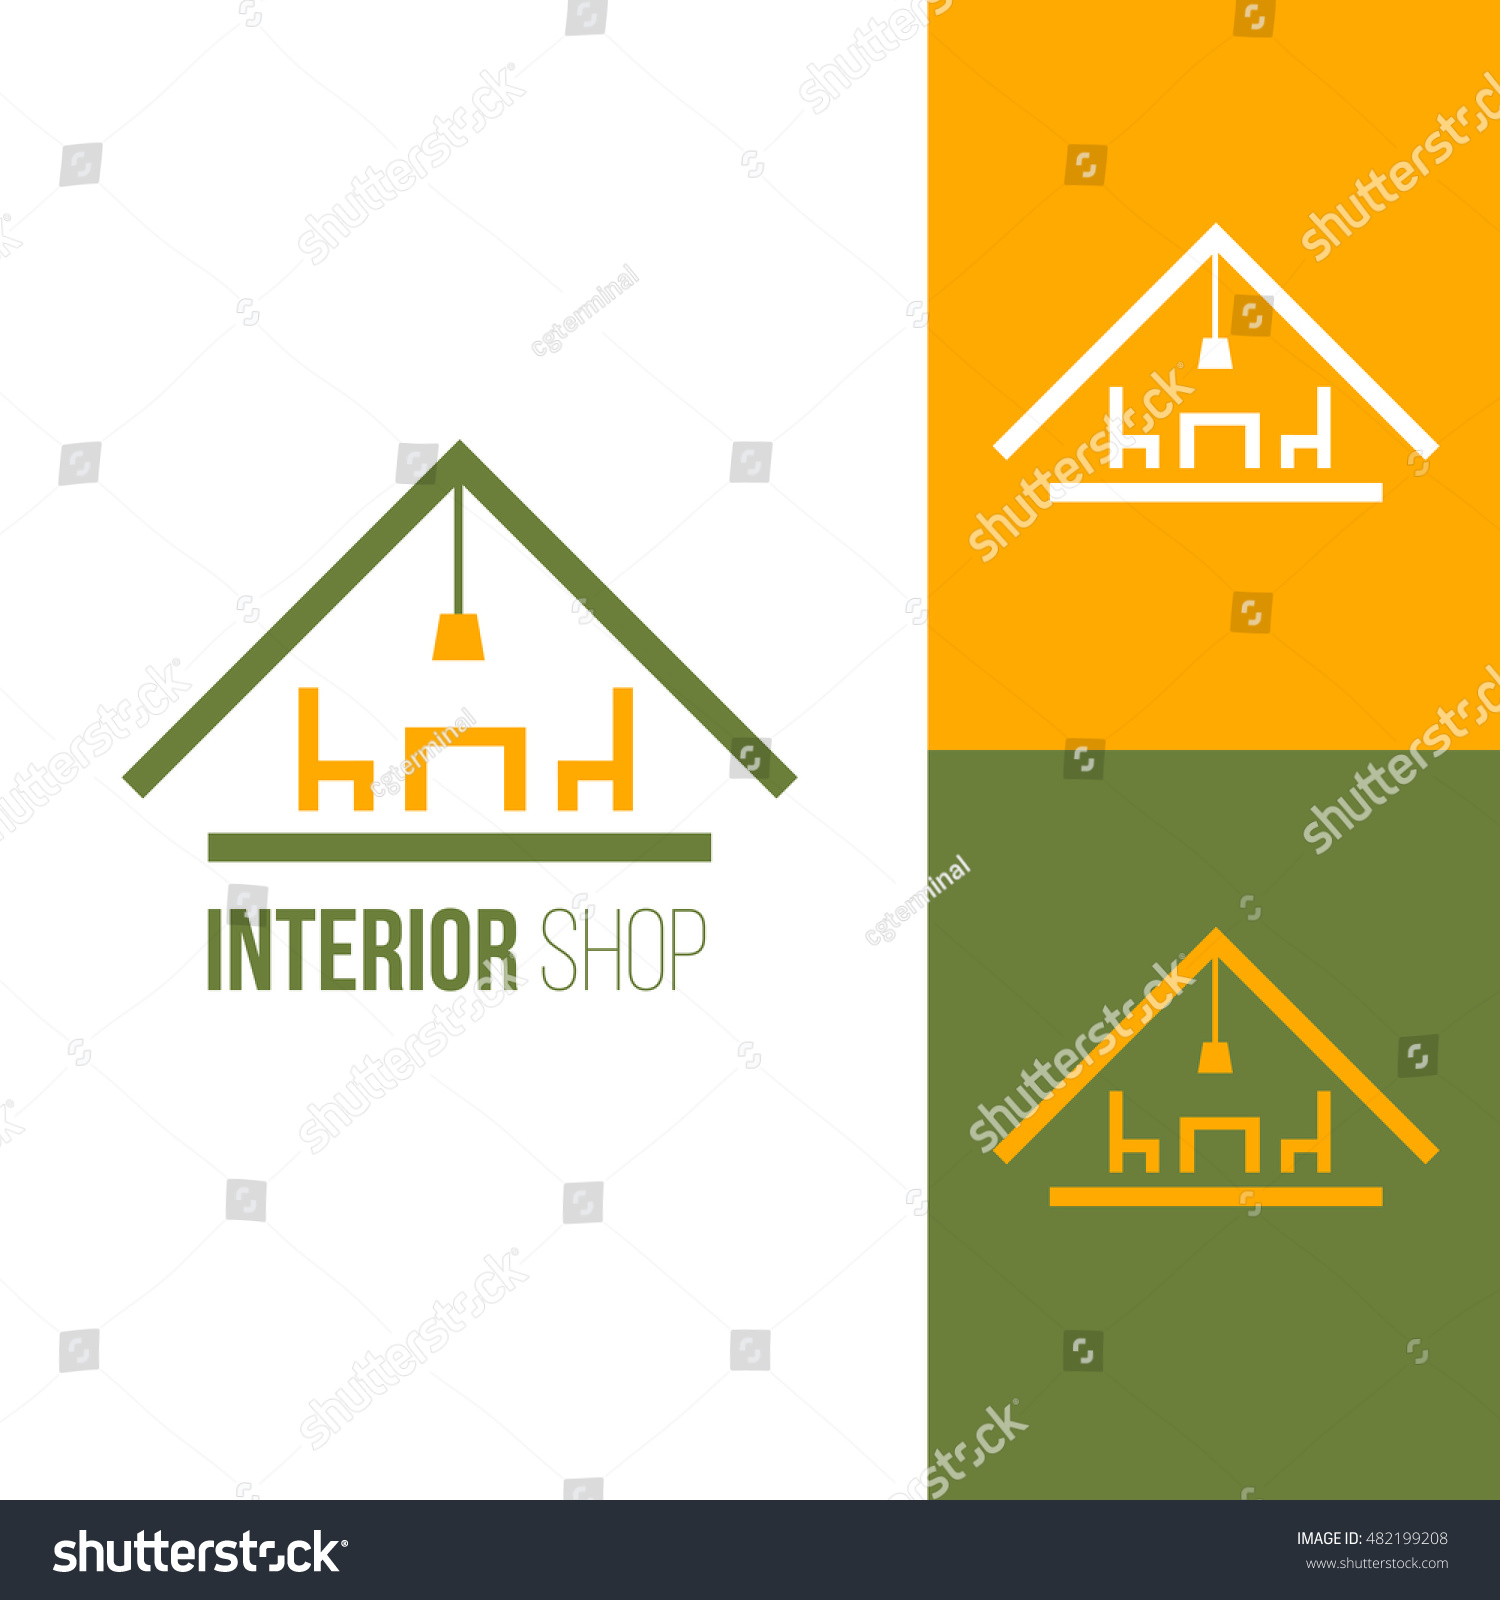 Furniture logo inspiration - Icon Or Logo Template For Furniture Shop Company Manufacturer Symbol For Corporate Branding